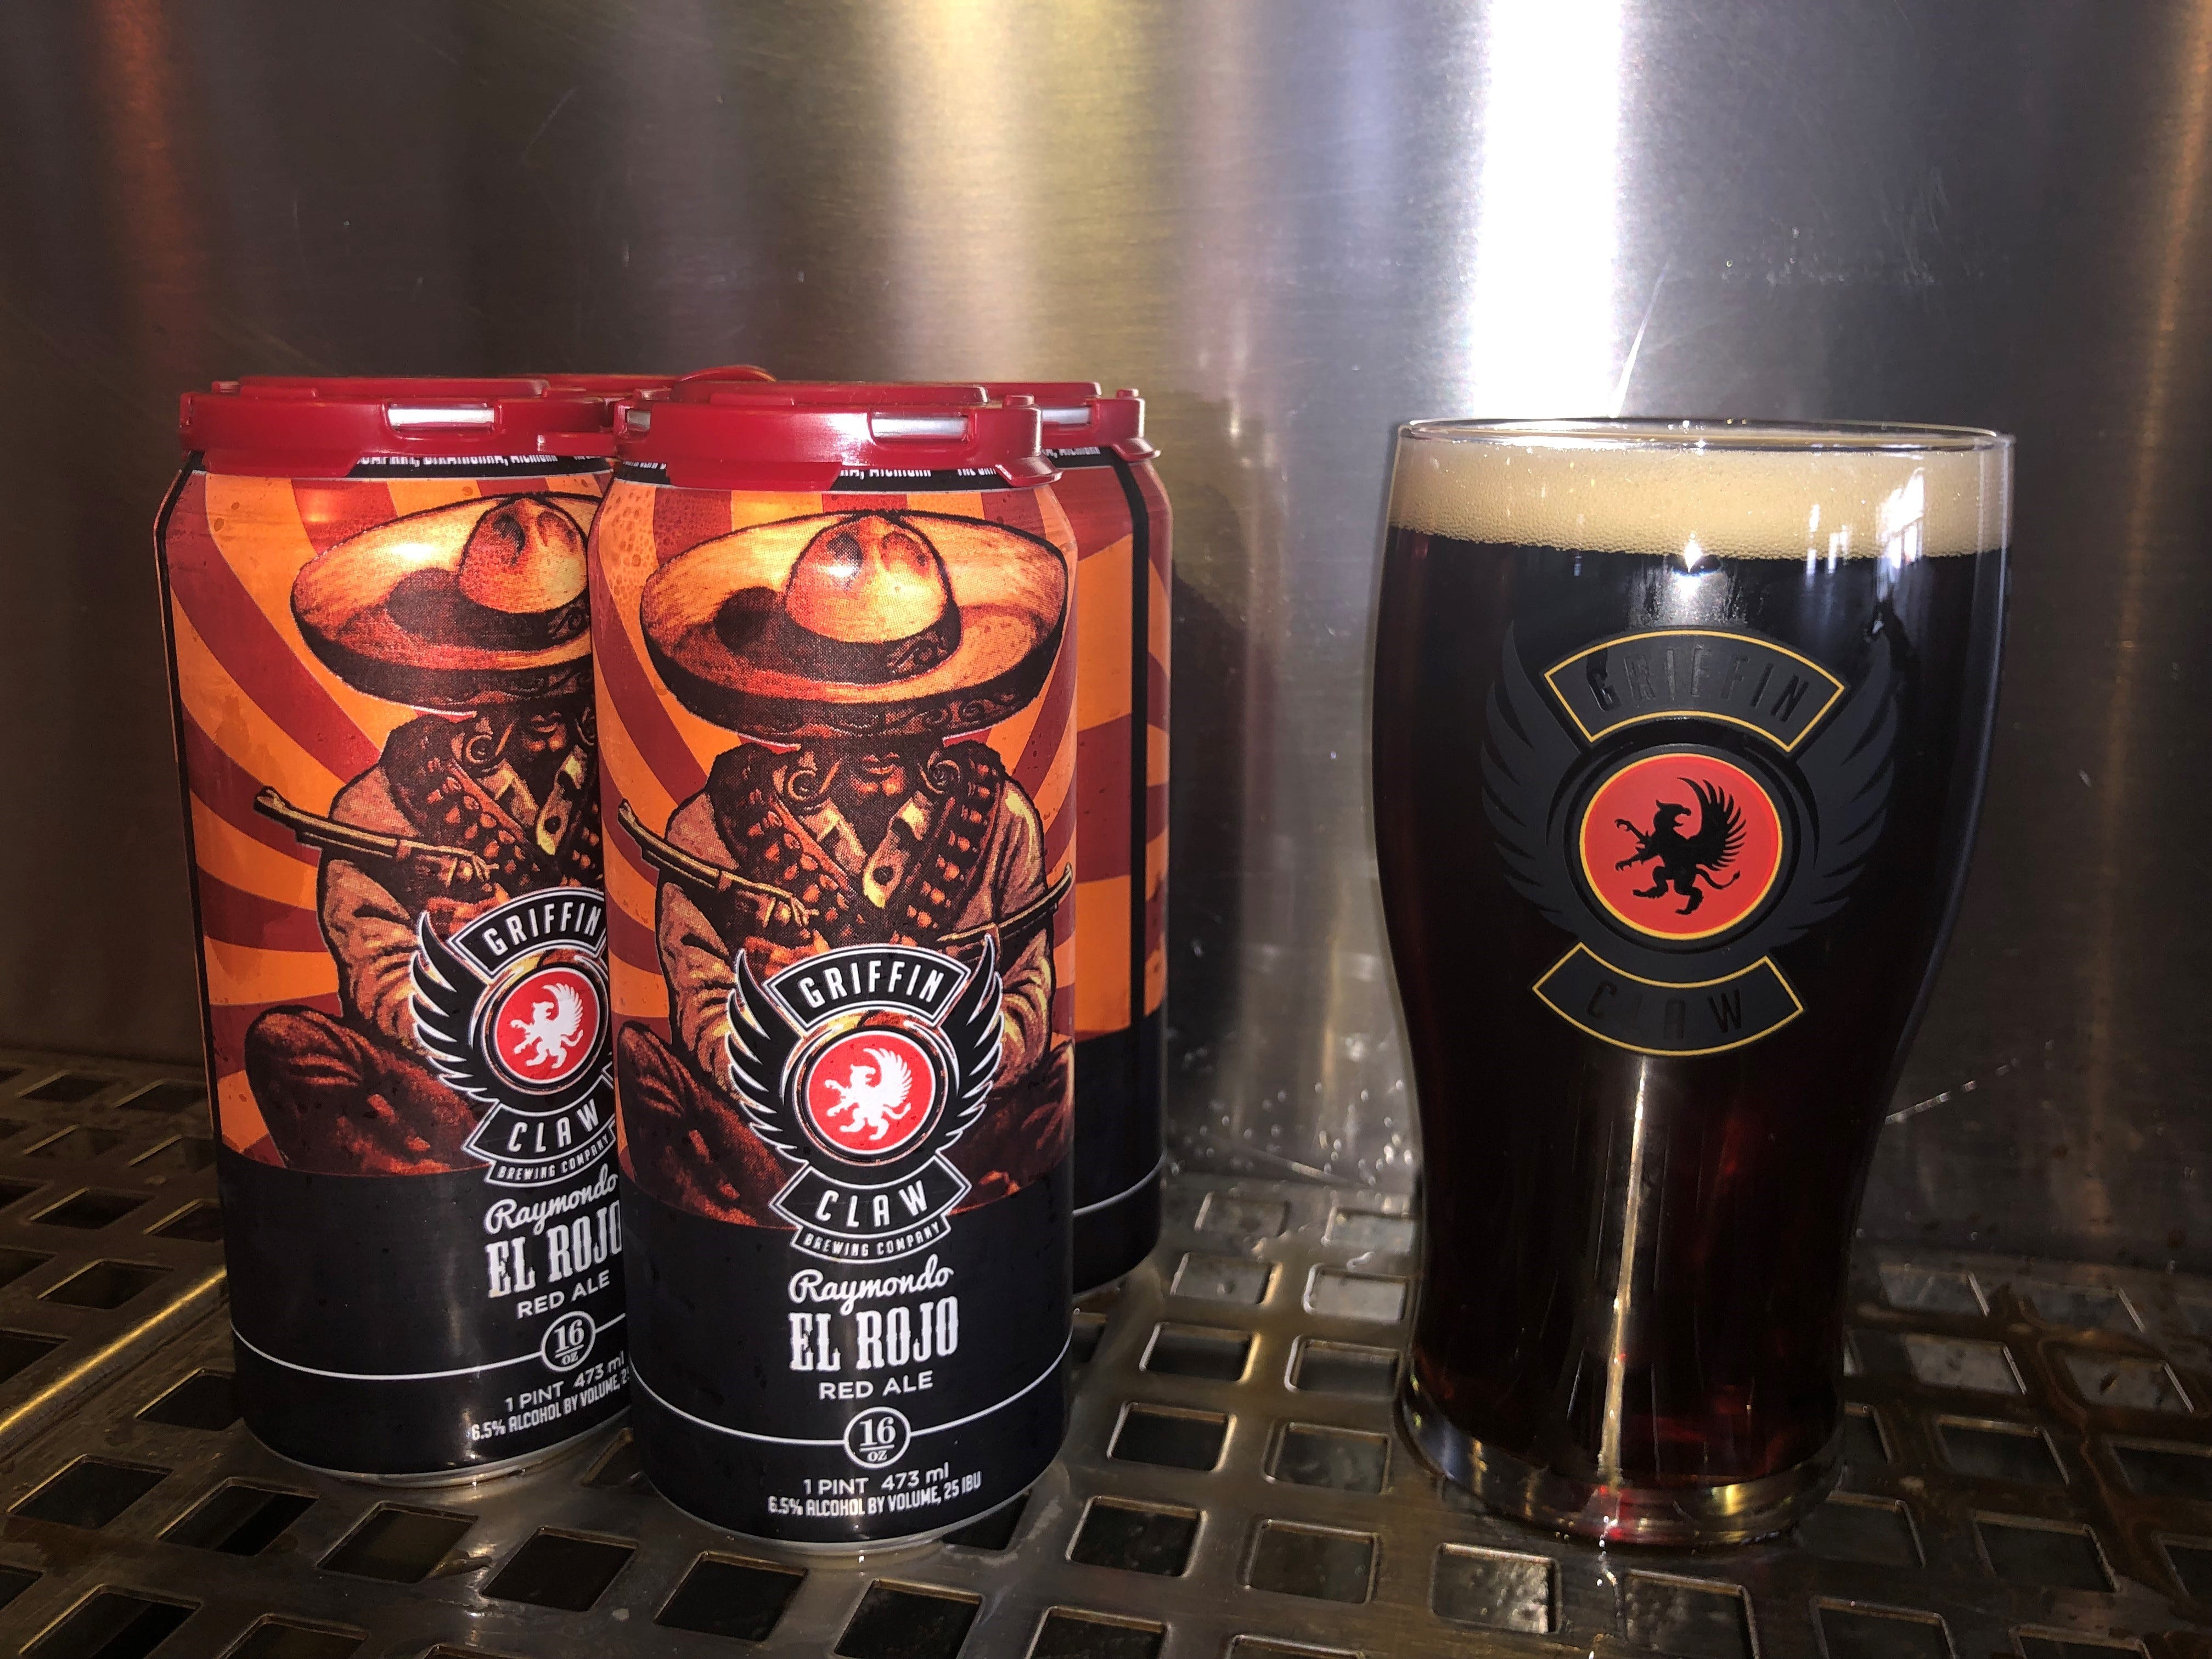 El Rojo, a beer crafted at Griffin Claw Brewing Company in Birmingham, recently was awarded a gold medal at the World Expo of Beer competition.